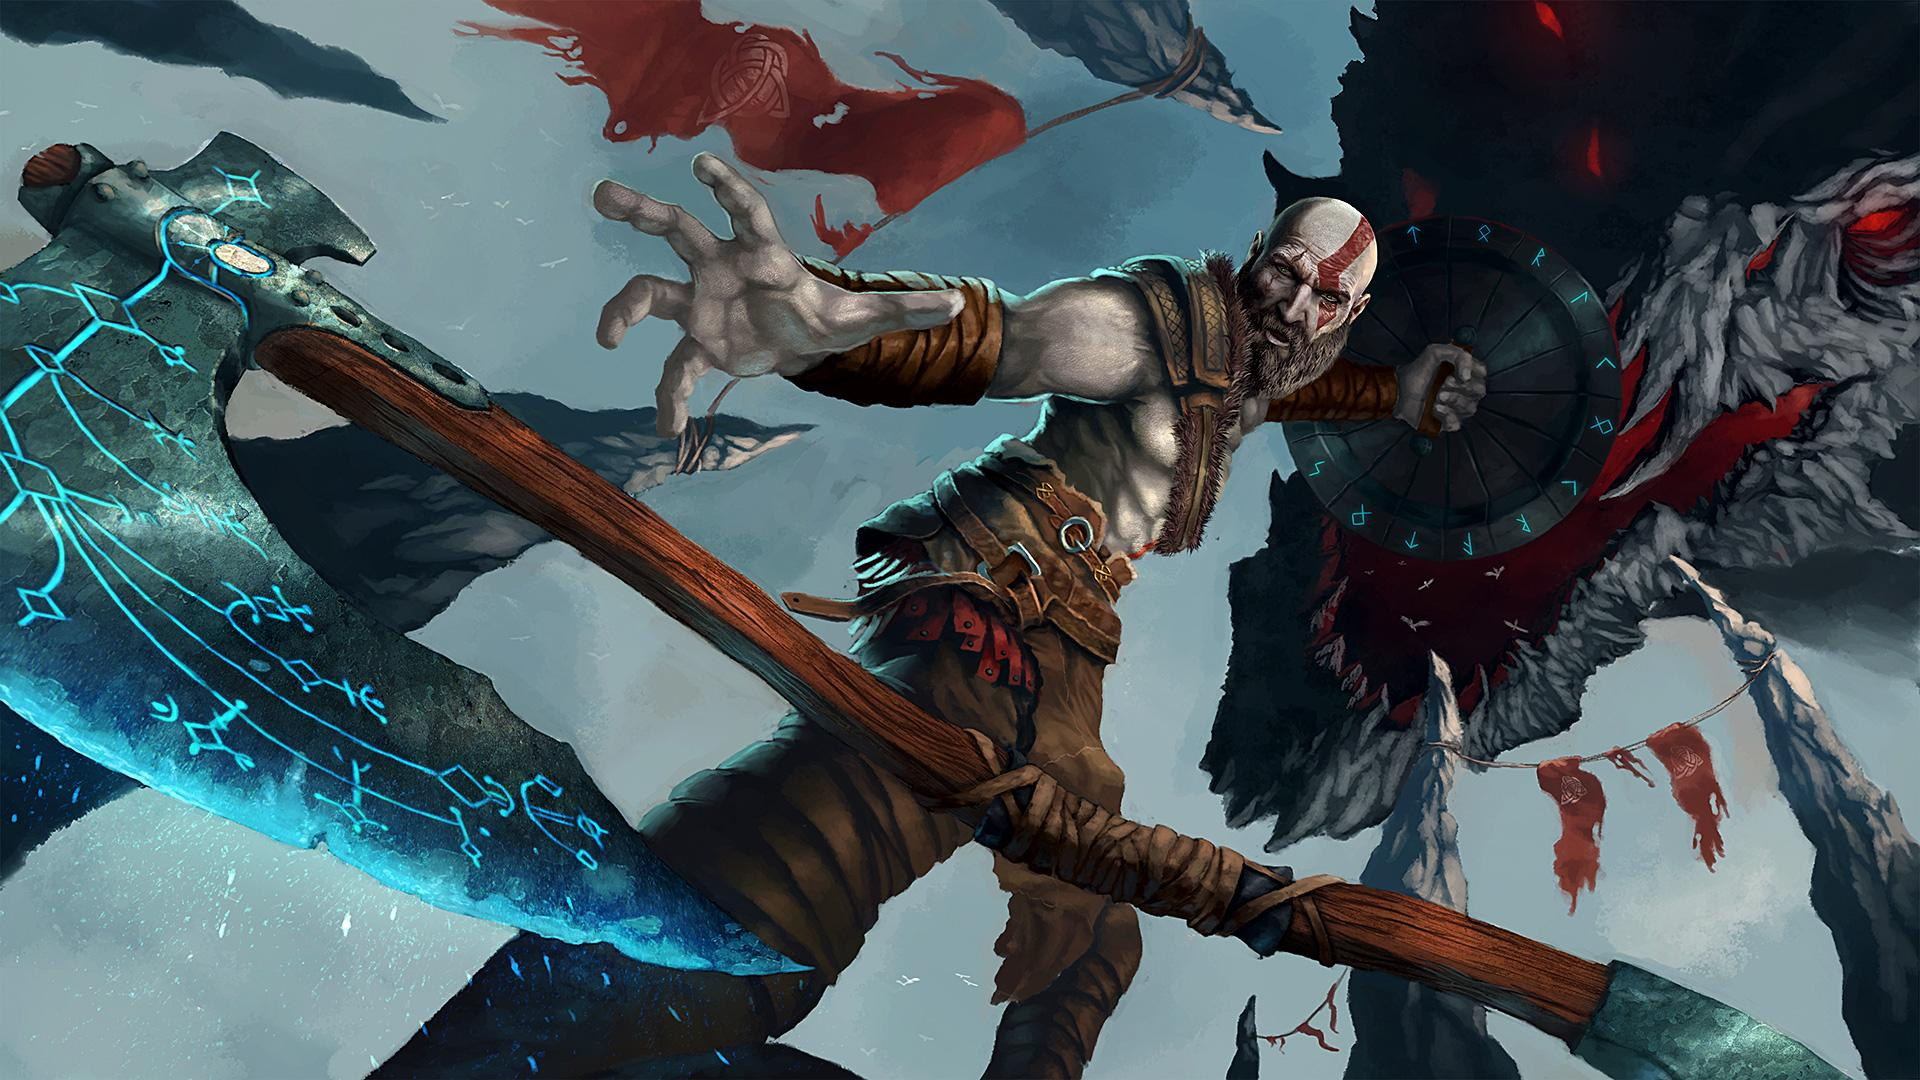 God Of War 4 4k Wallpaper posted by Samantha Sellers